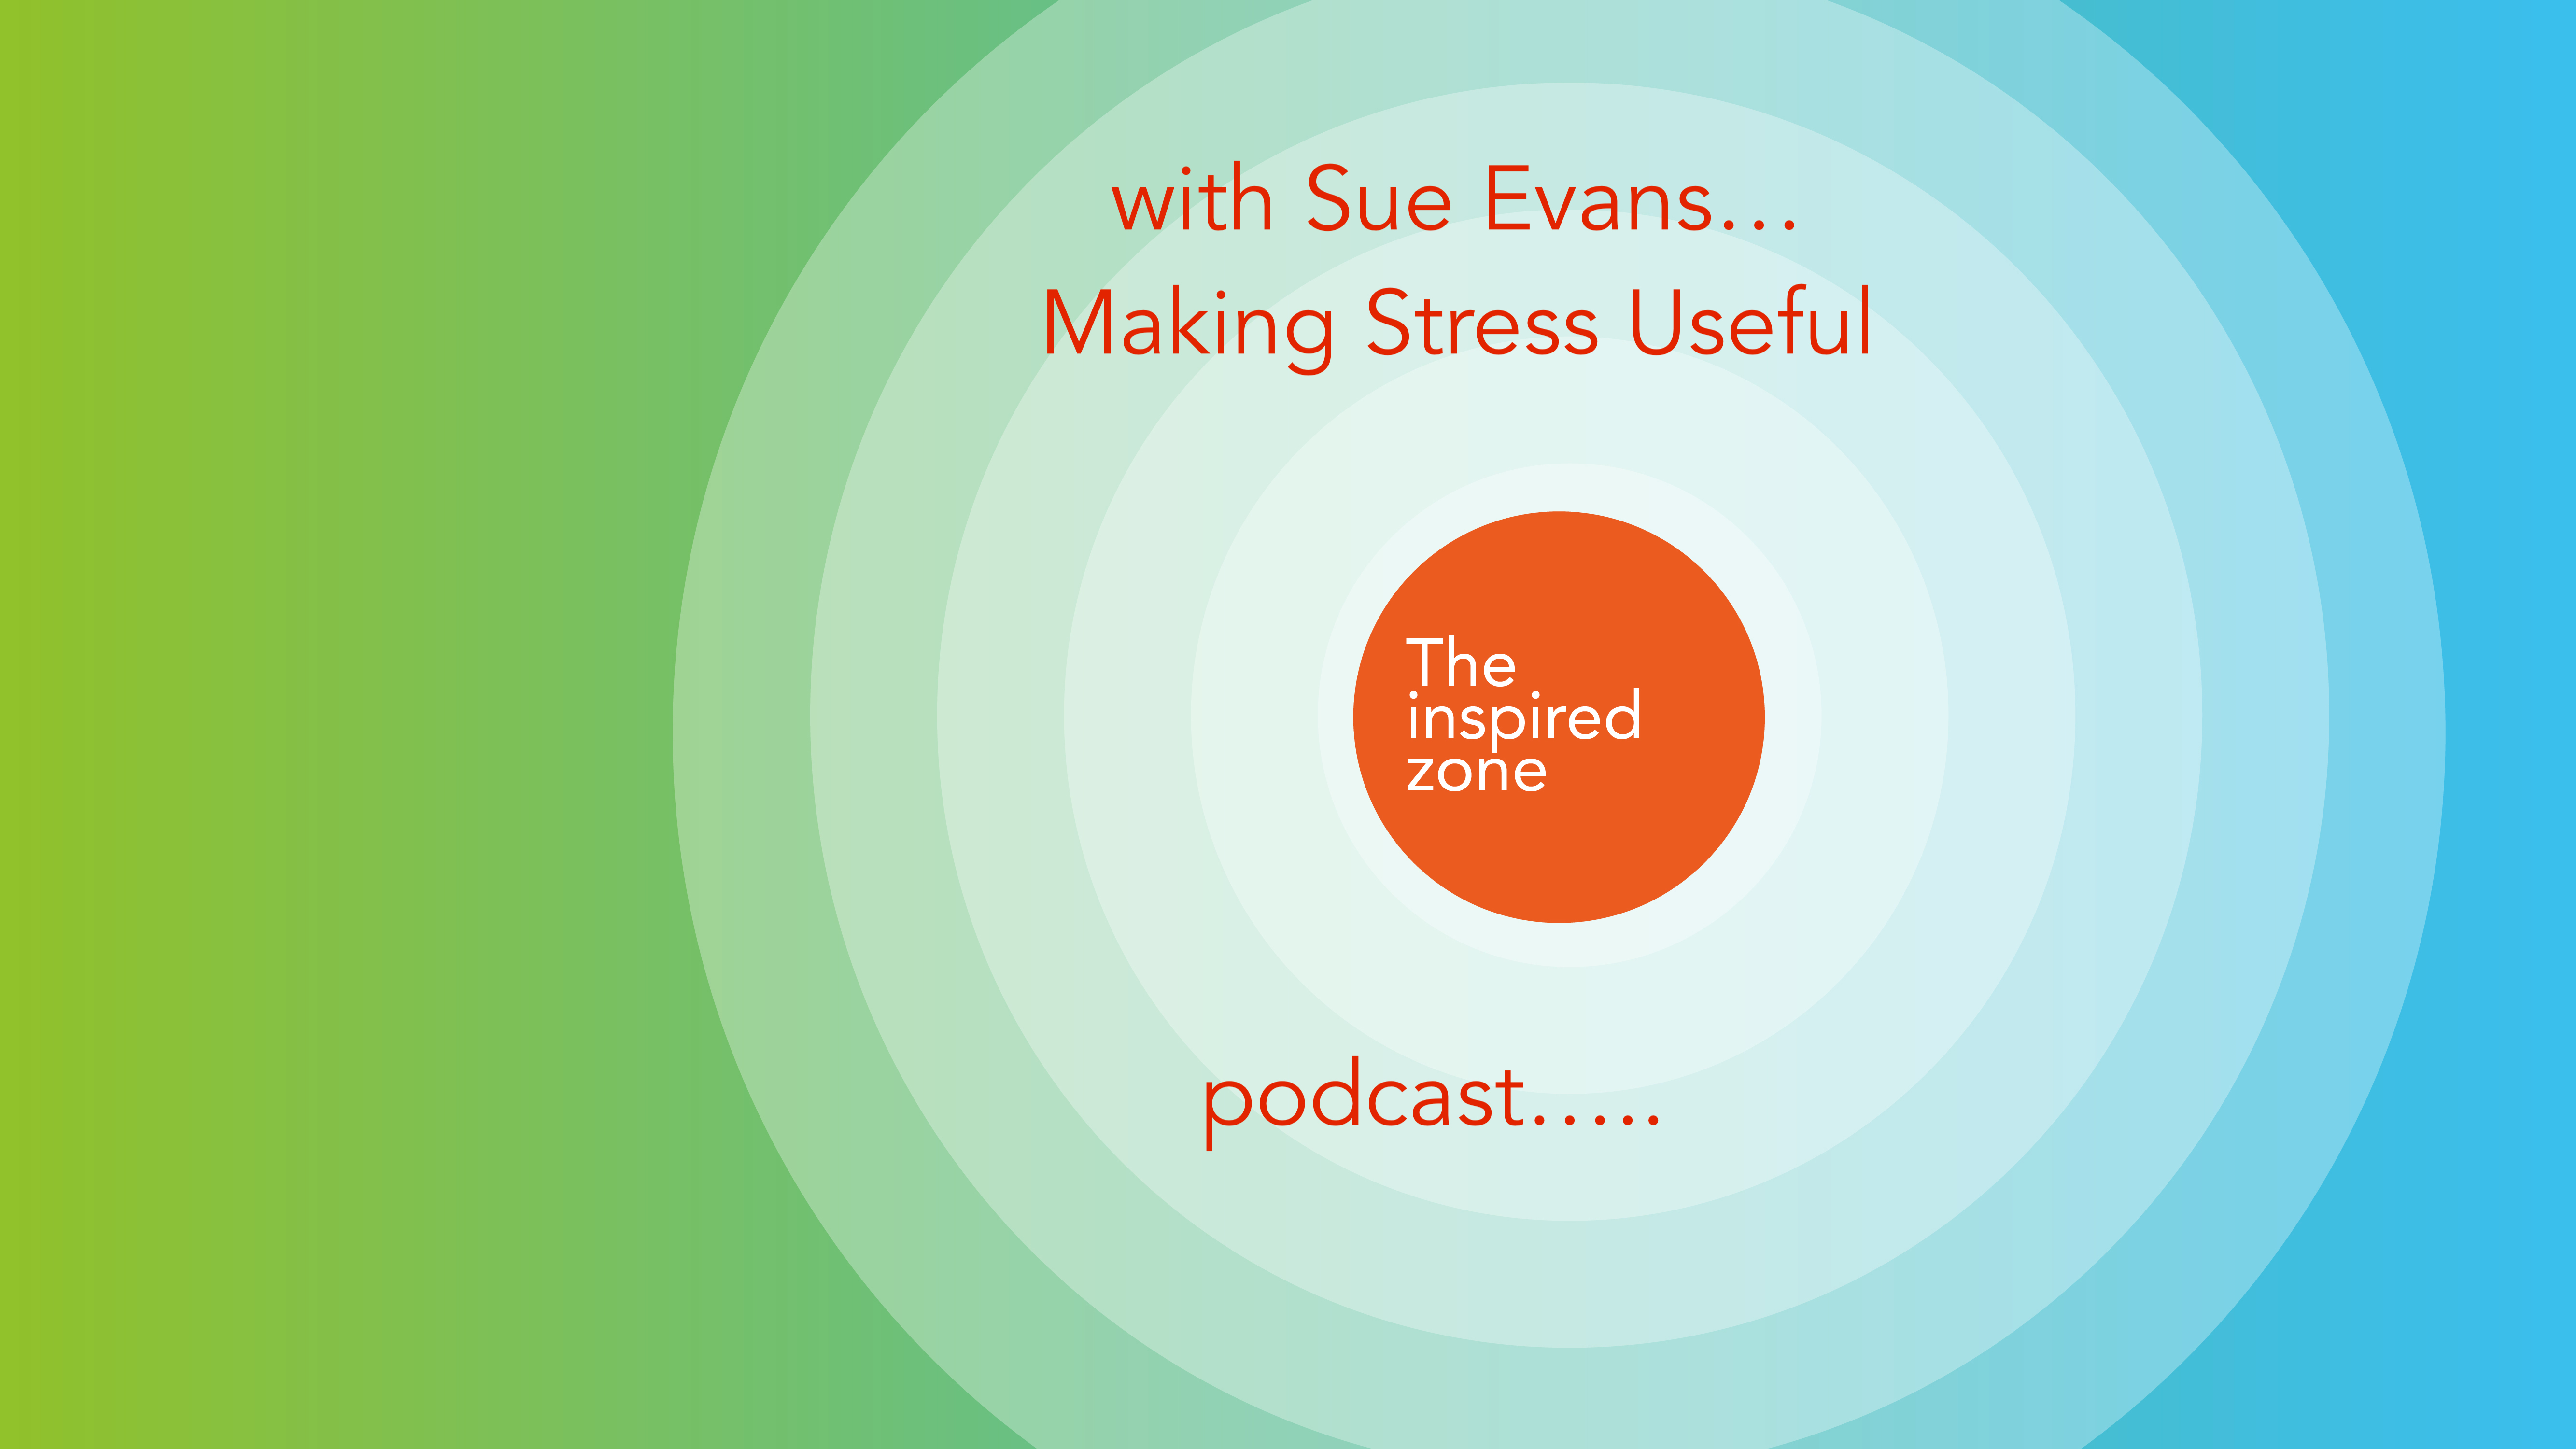 Making Stress Useful And Wellbeing In The Workplace